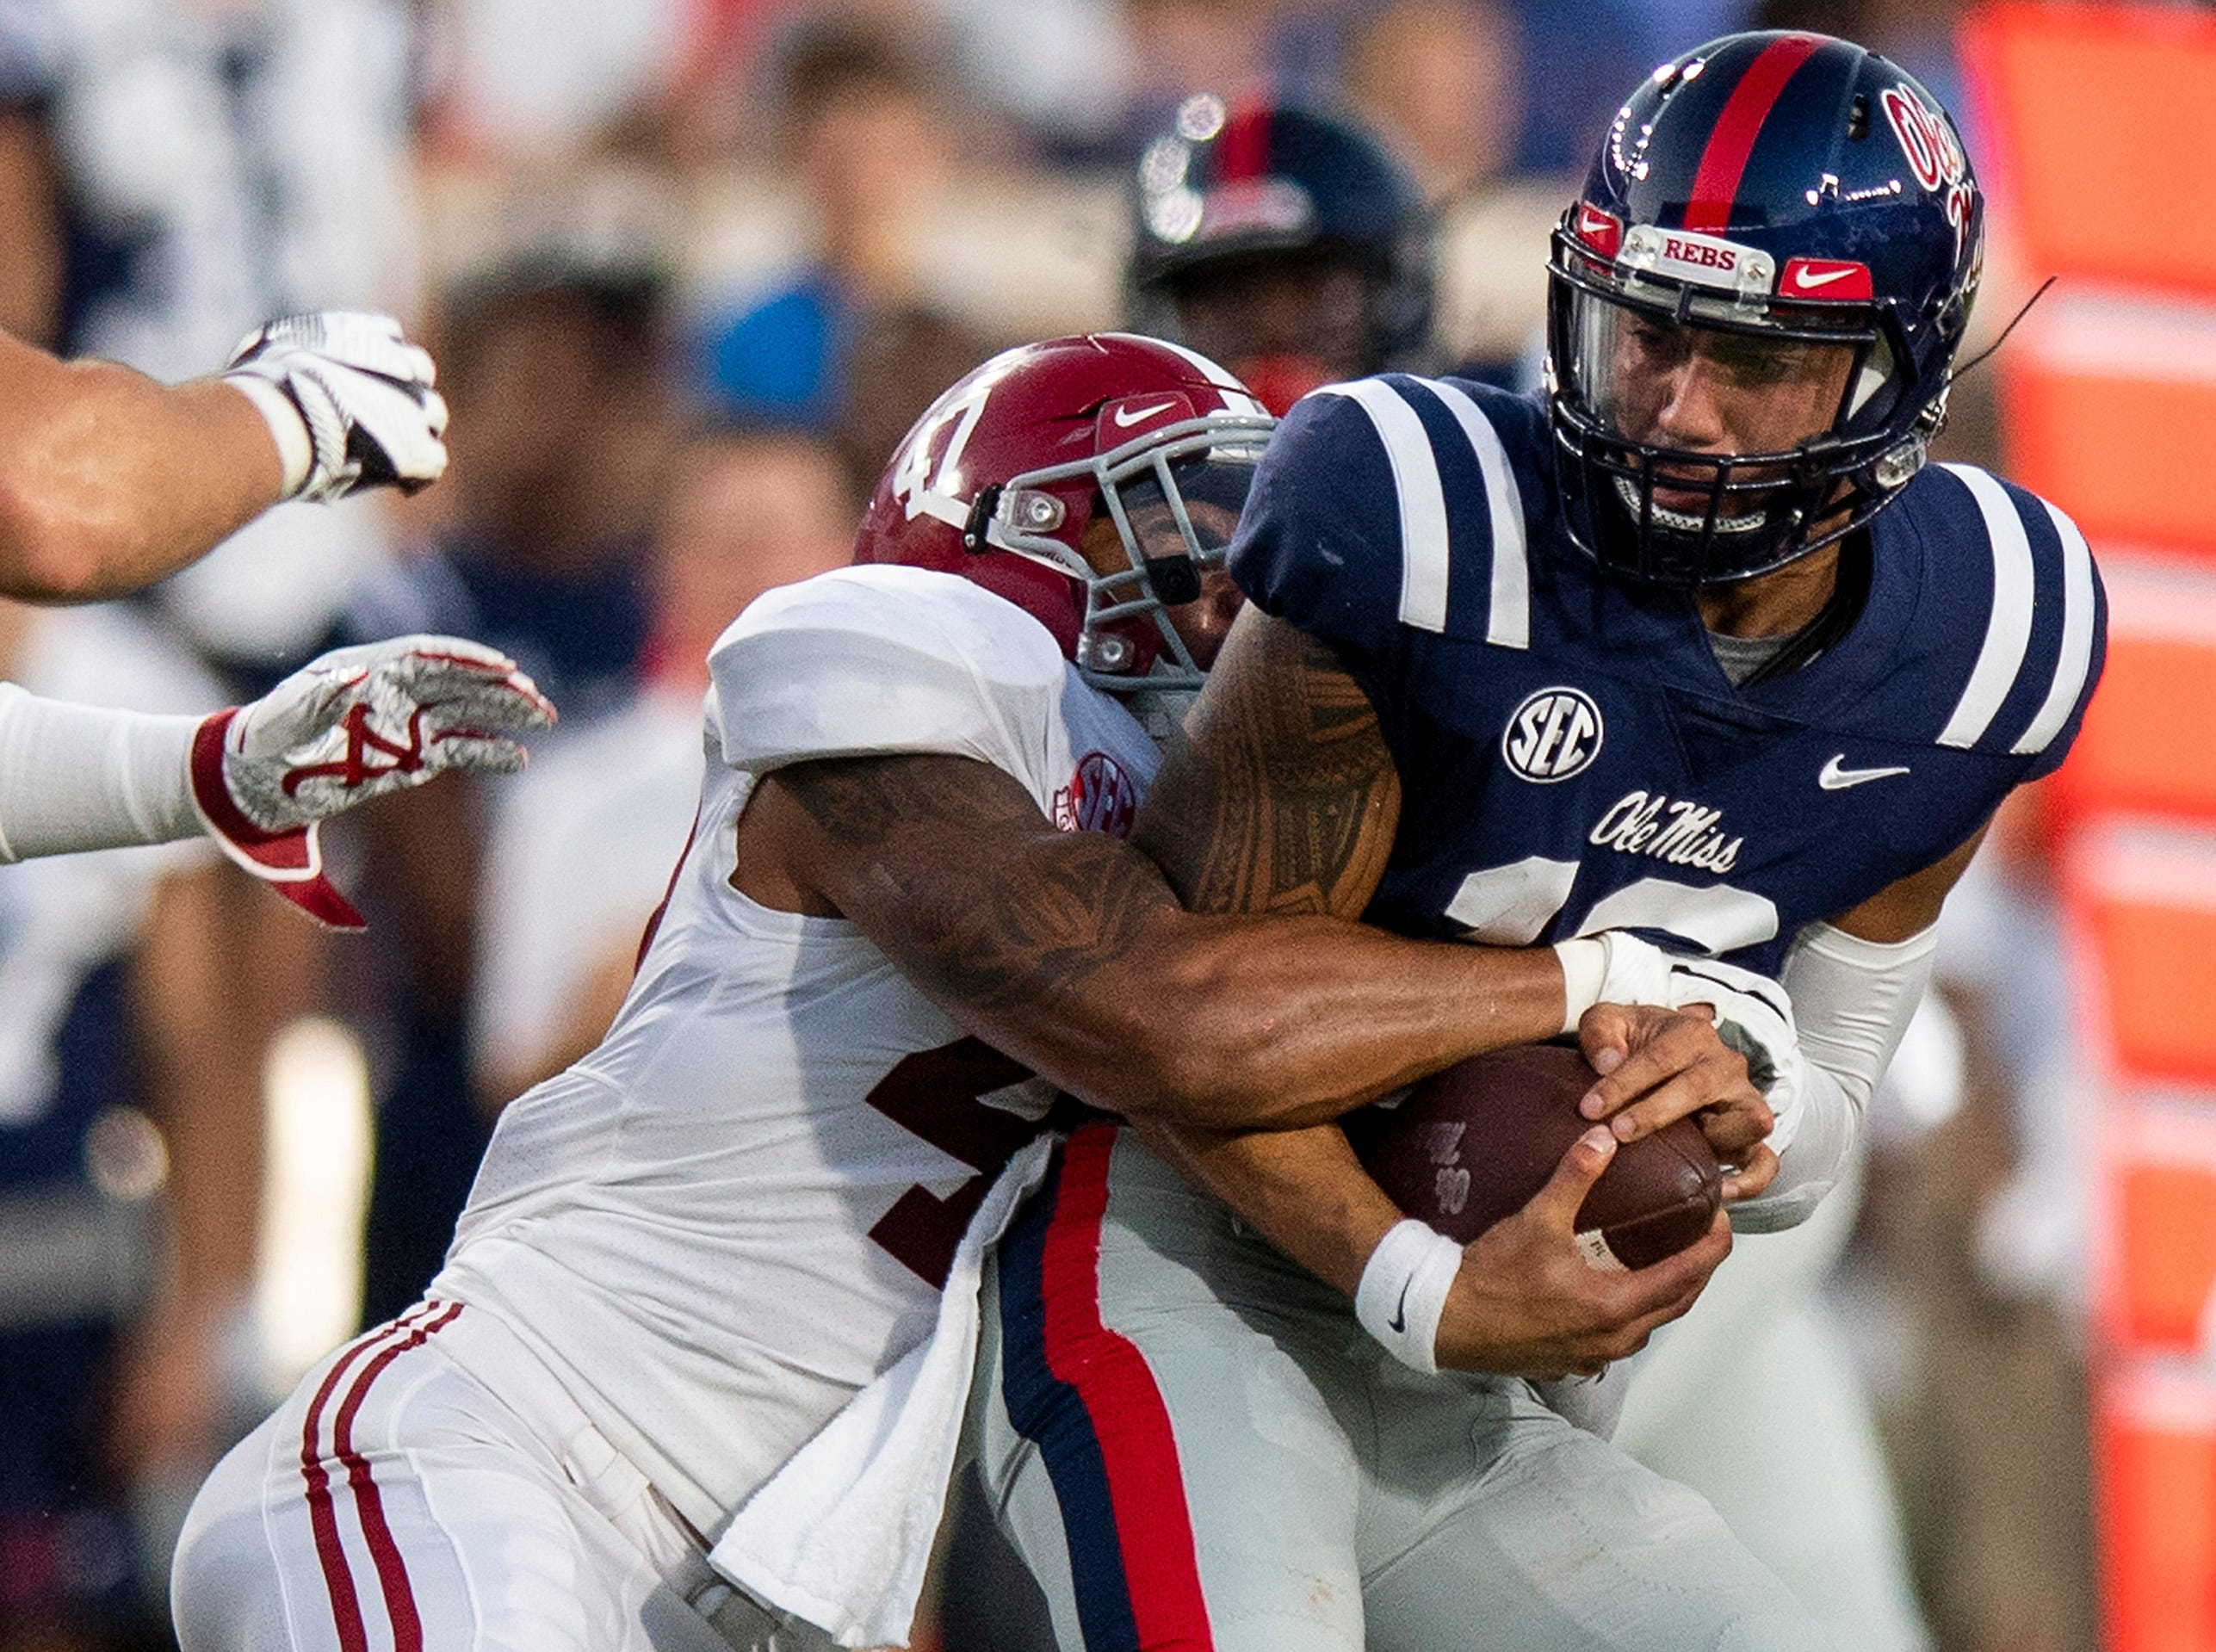 Alabama linebacker Christian Miller (47) sacks Ole Miss quarterback Jordan Ta'amu (10) In first half action in Oxford, Ms., on Saturday September 15, 2018.